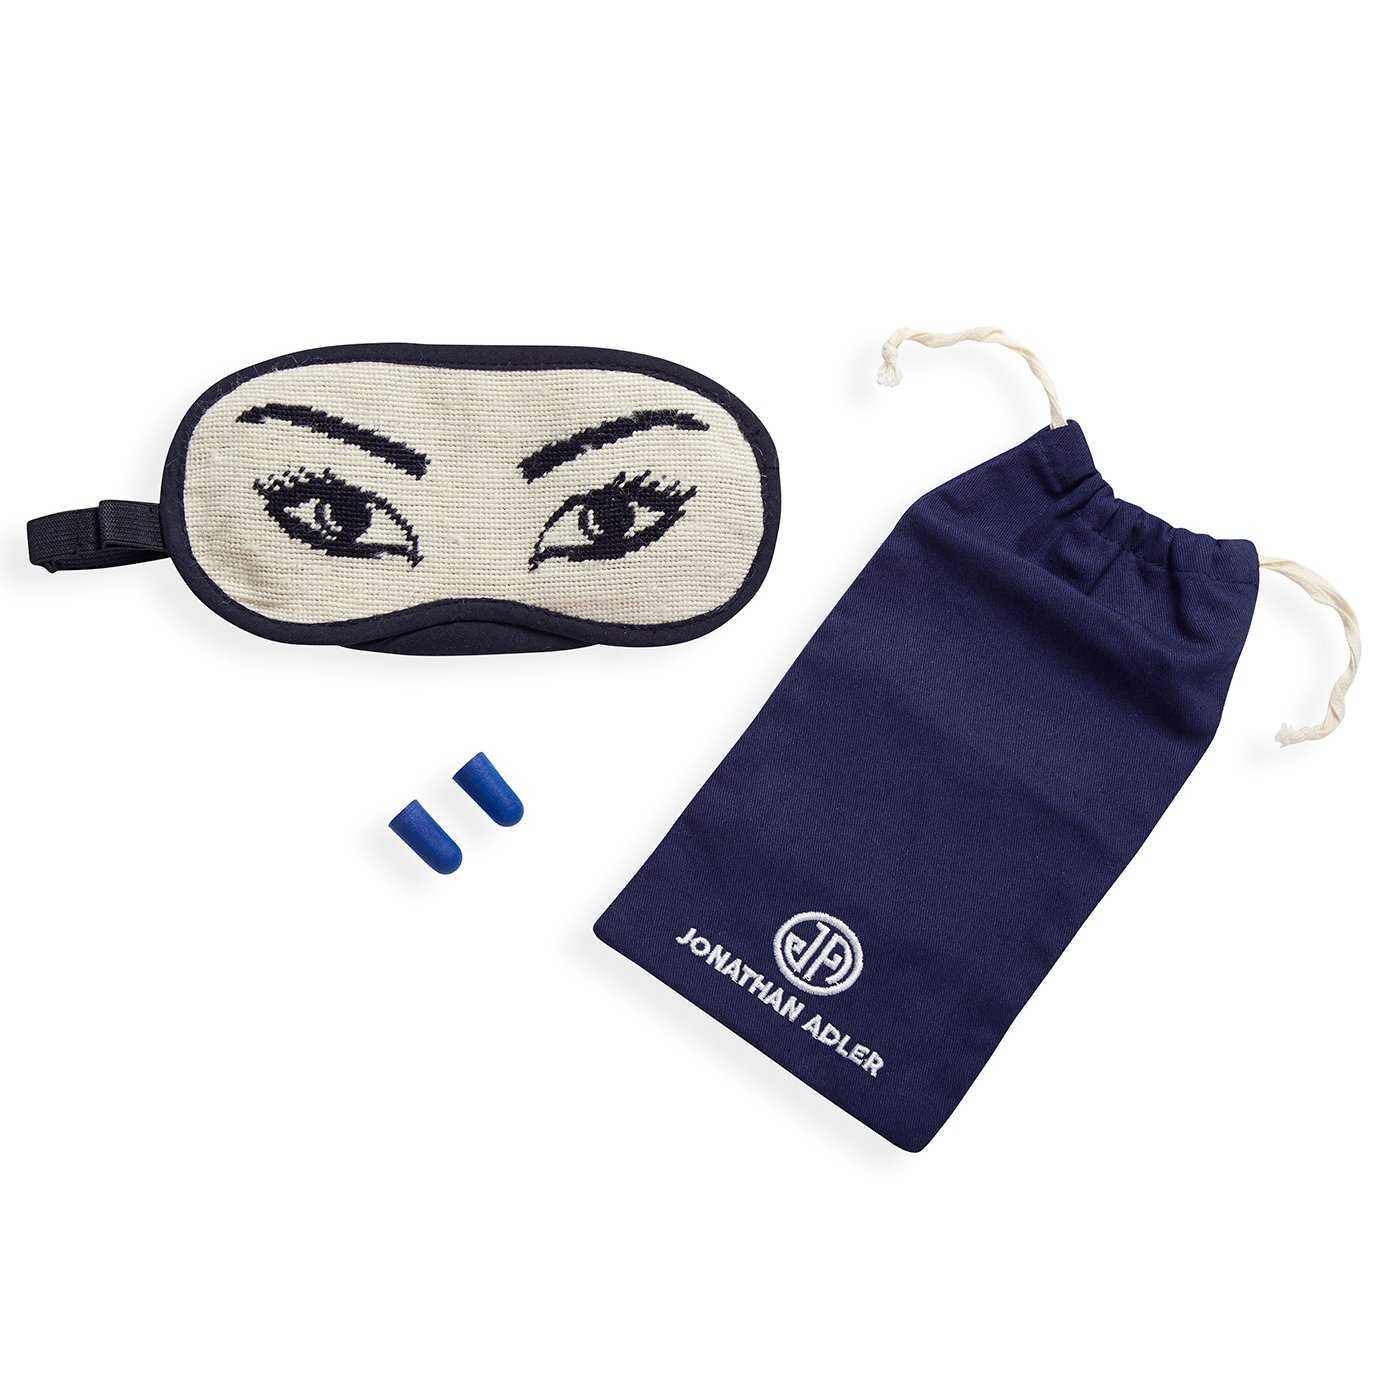 Jonathan Adler Women's Eyes Jet Set Travel Kit